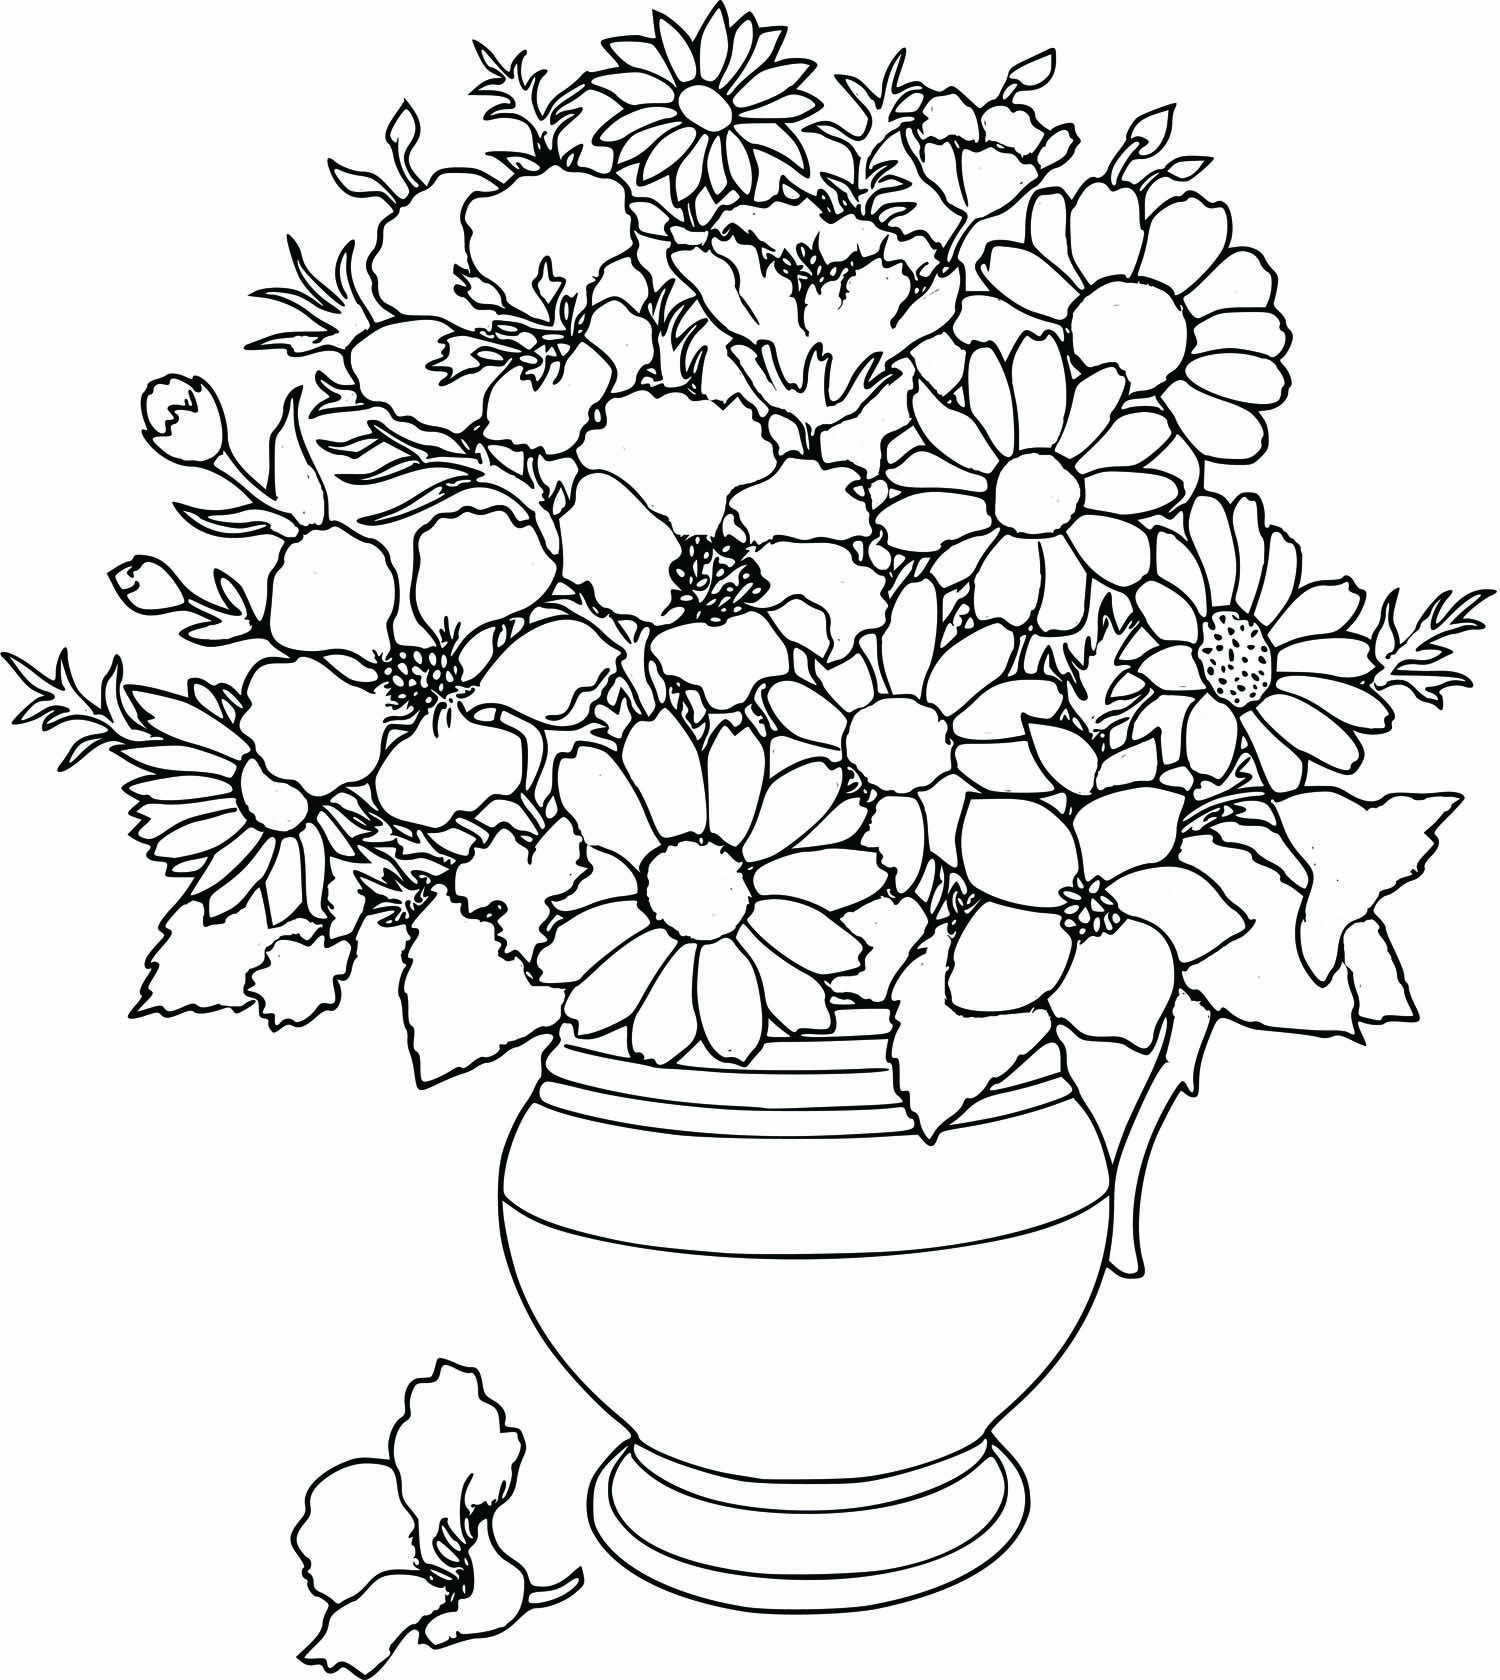 mothers day flowers coloring pages (With images) | Flower ... | free coloring pages for girls-flowers